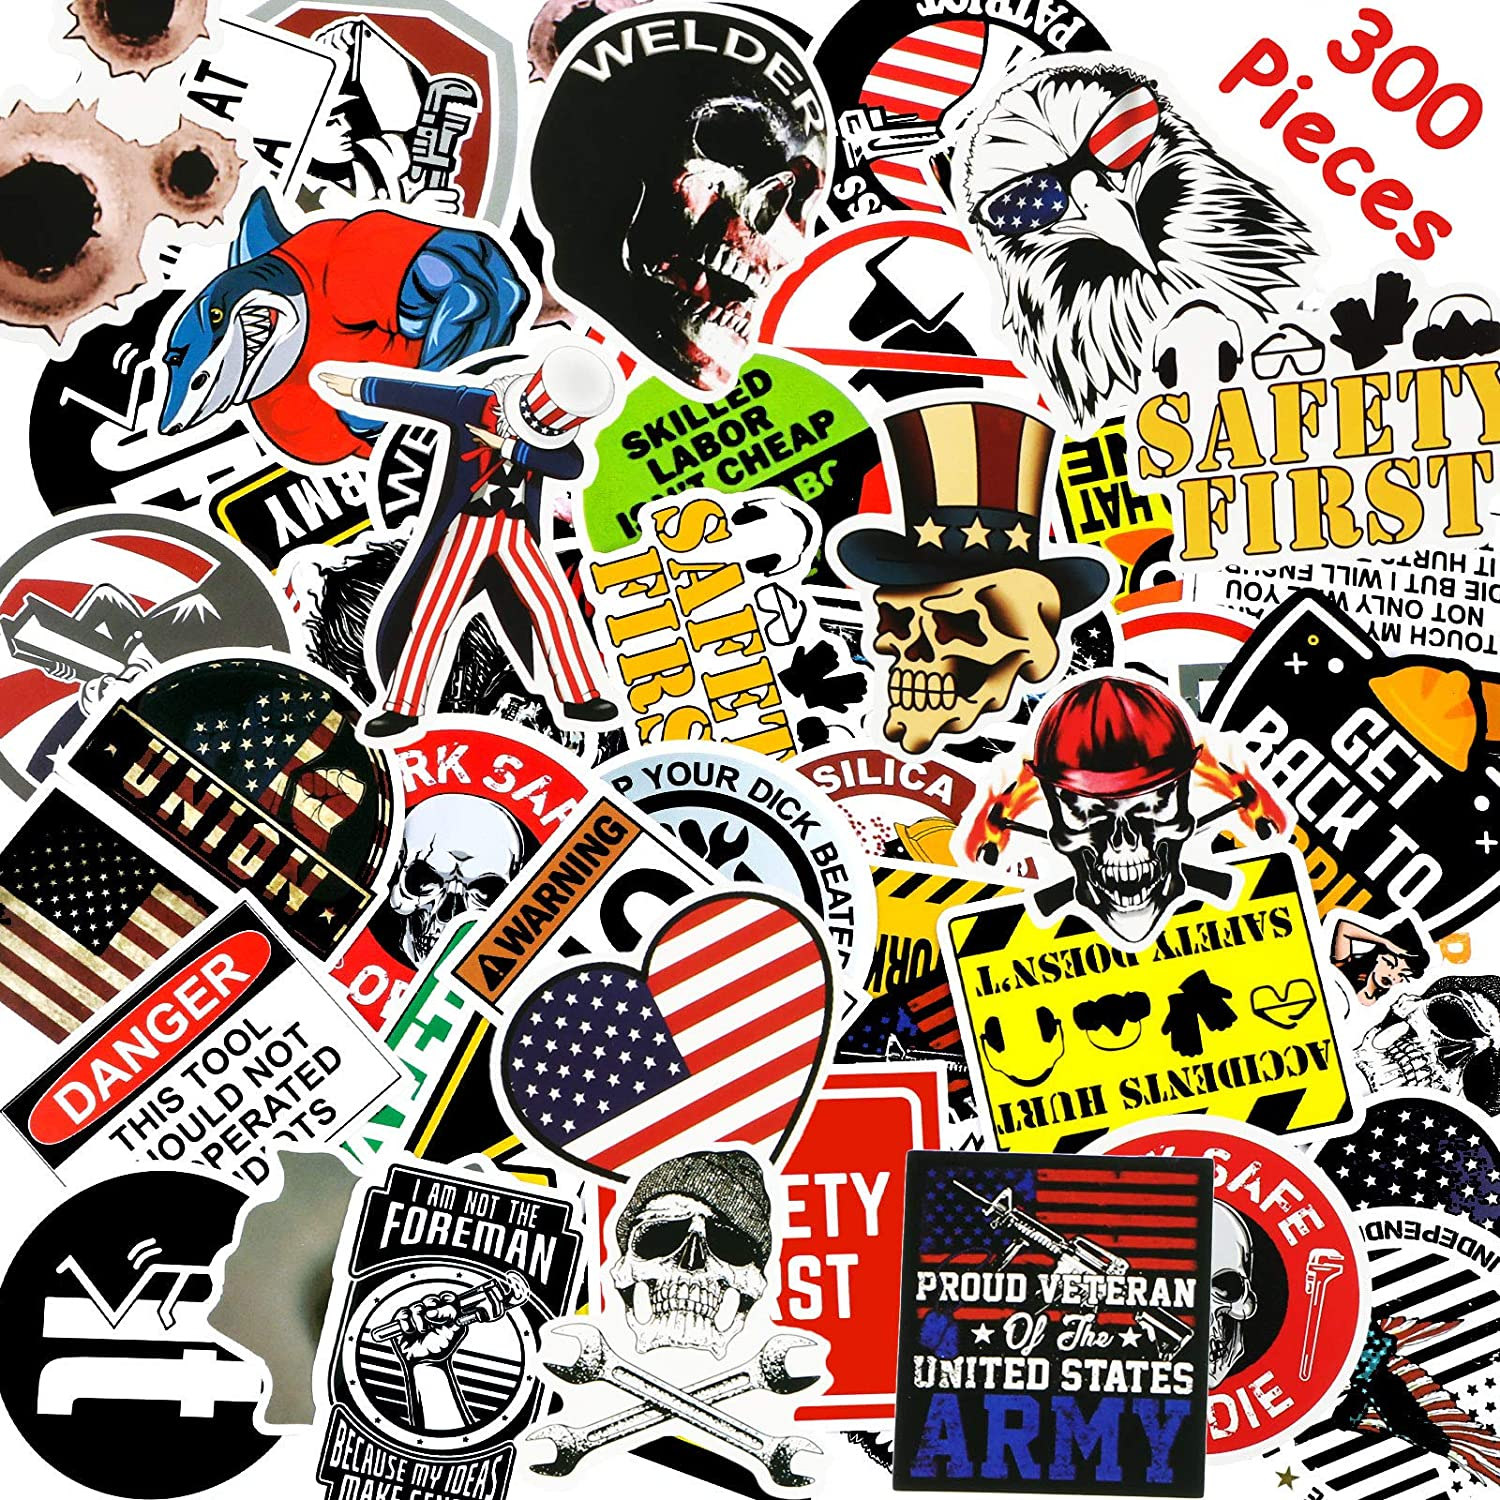 Hard Hat Stickers Tool Box Sticker Helmet Stickers Funny Decals for Worker Construction Electrician Oilfield Fire Crew Mechanic Laptop Luggage Bicycle Stickers (300 Pieces)